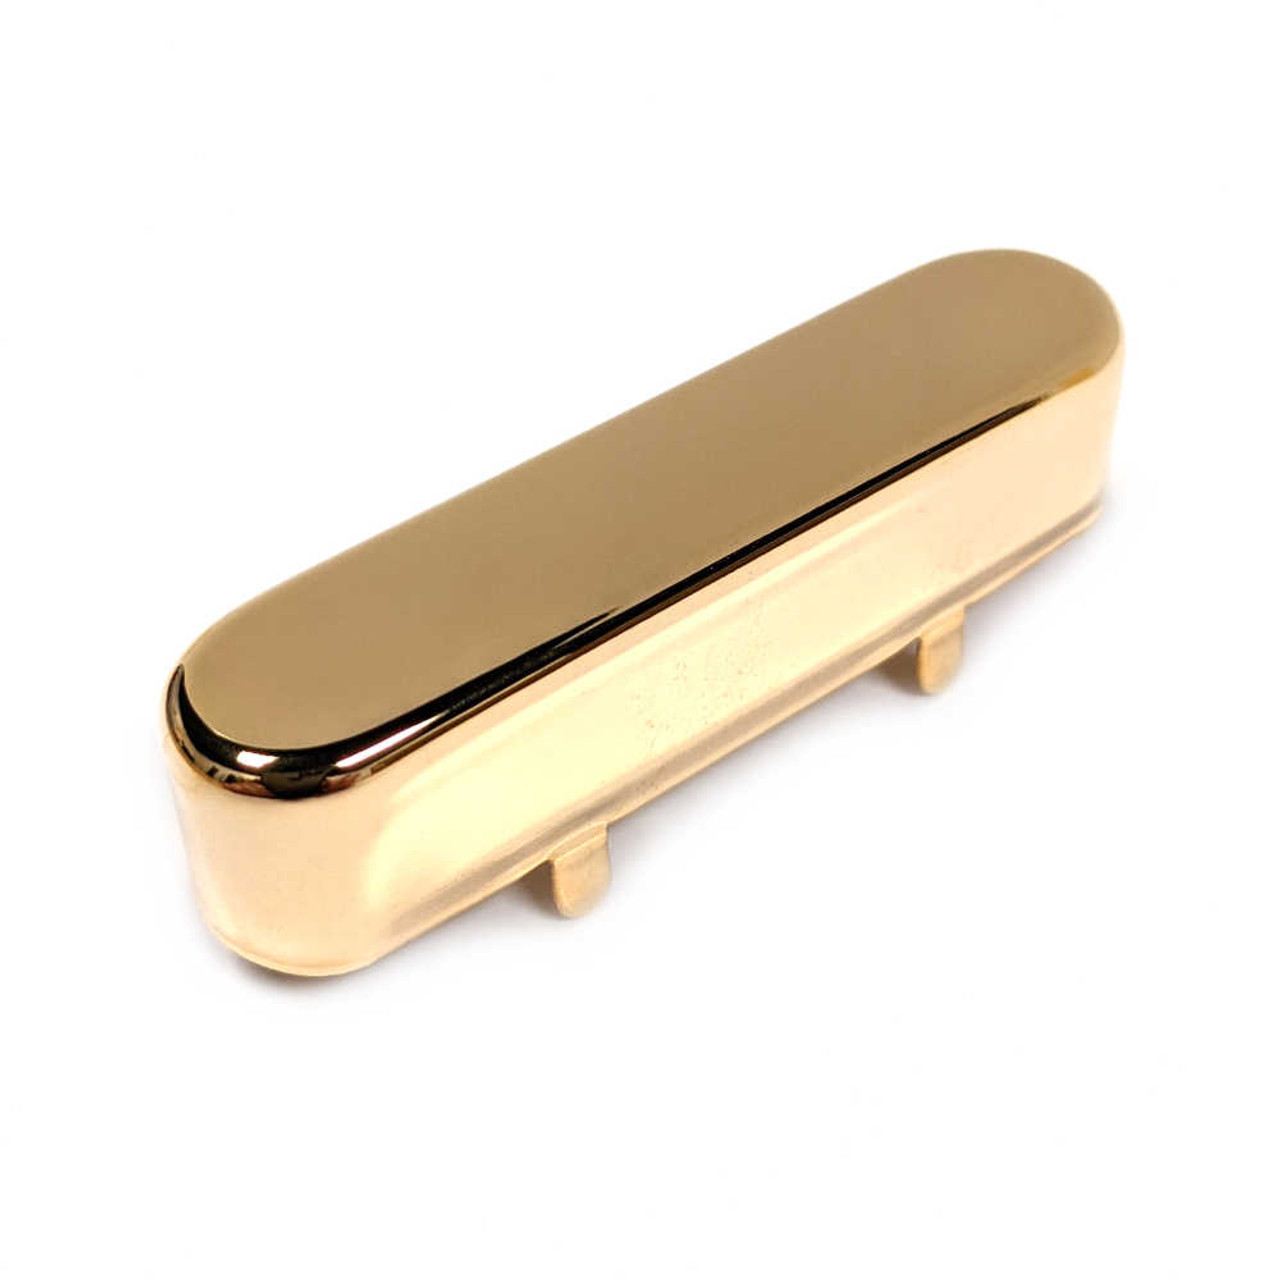 Telecaster Pickup Cover - Neck Gold (plated nickel/silver)